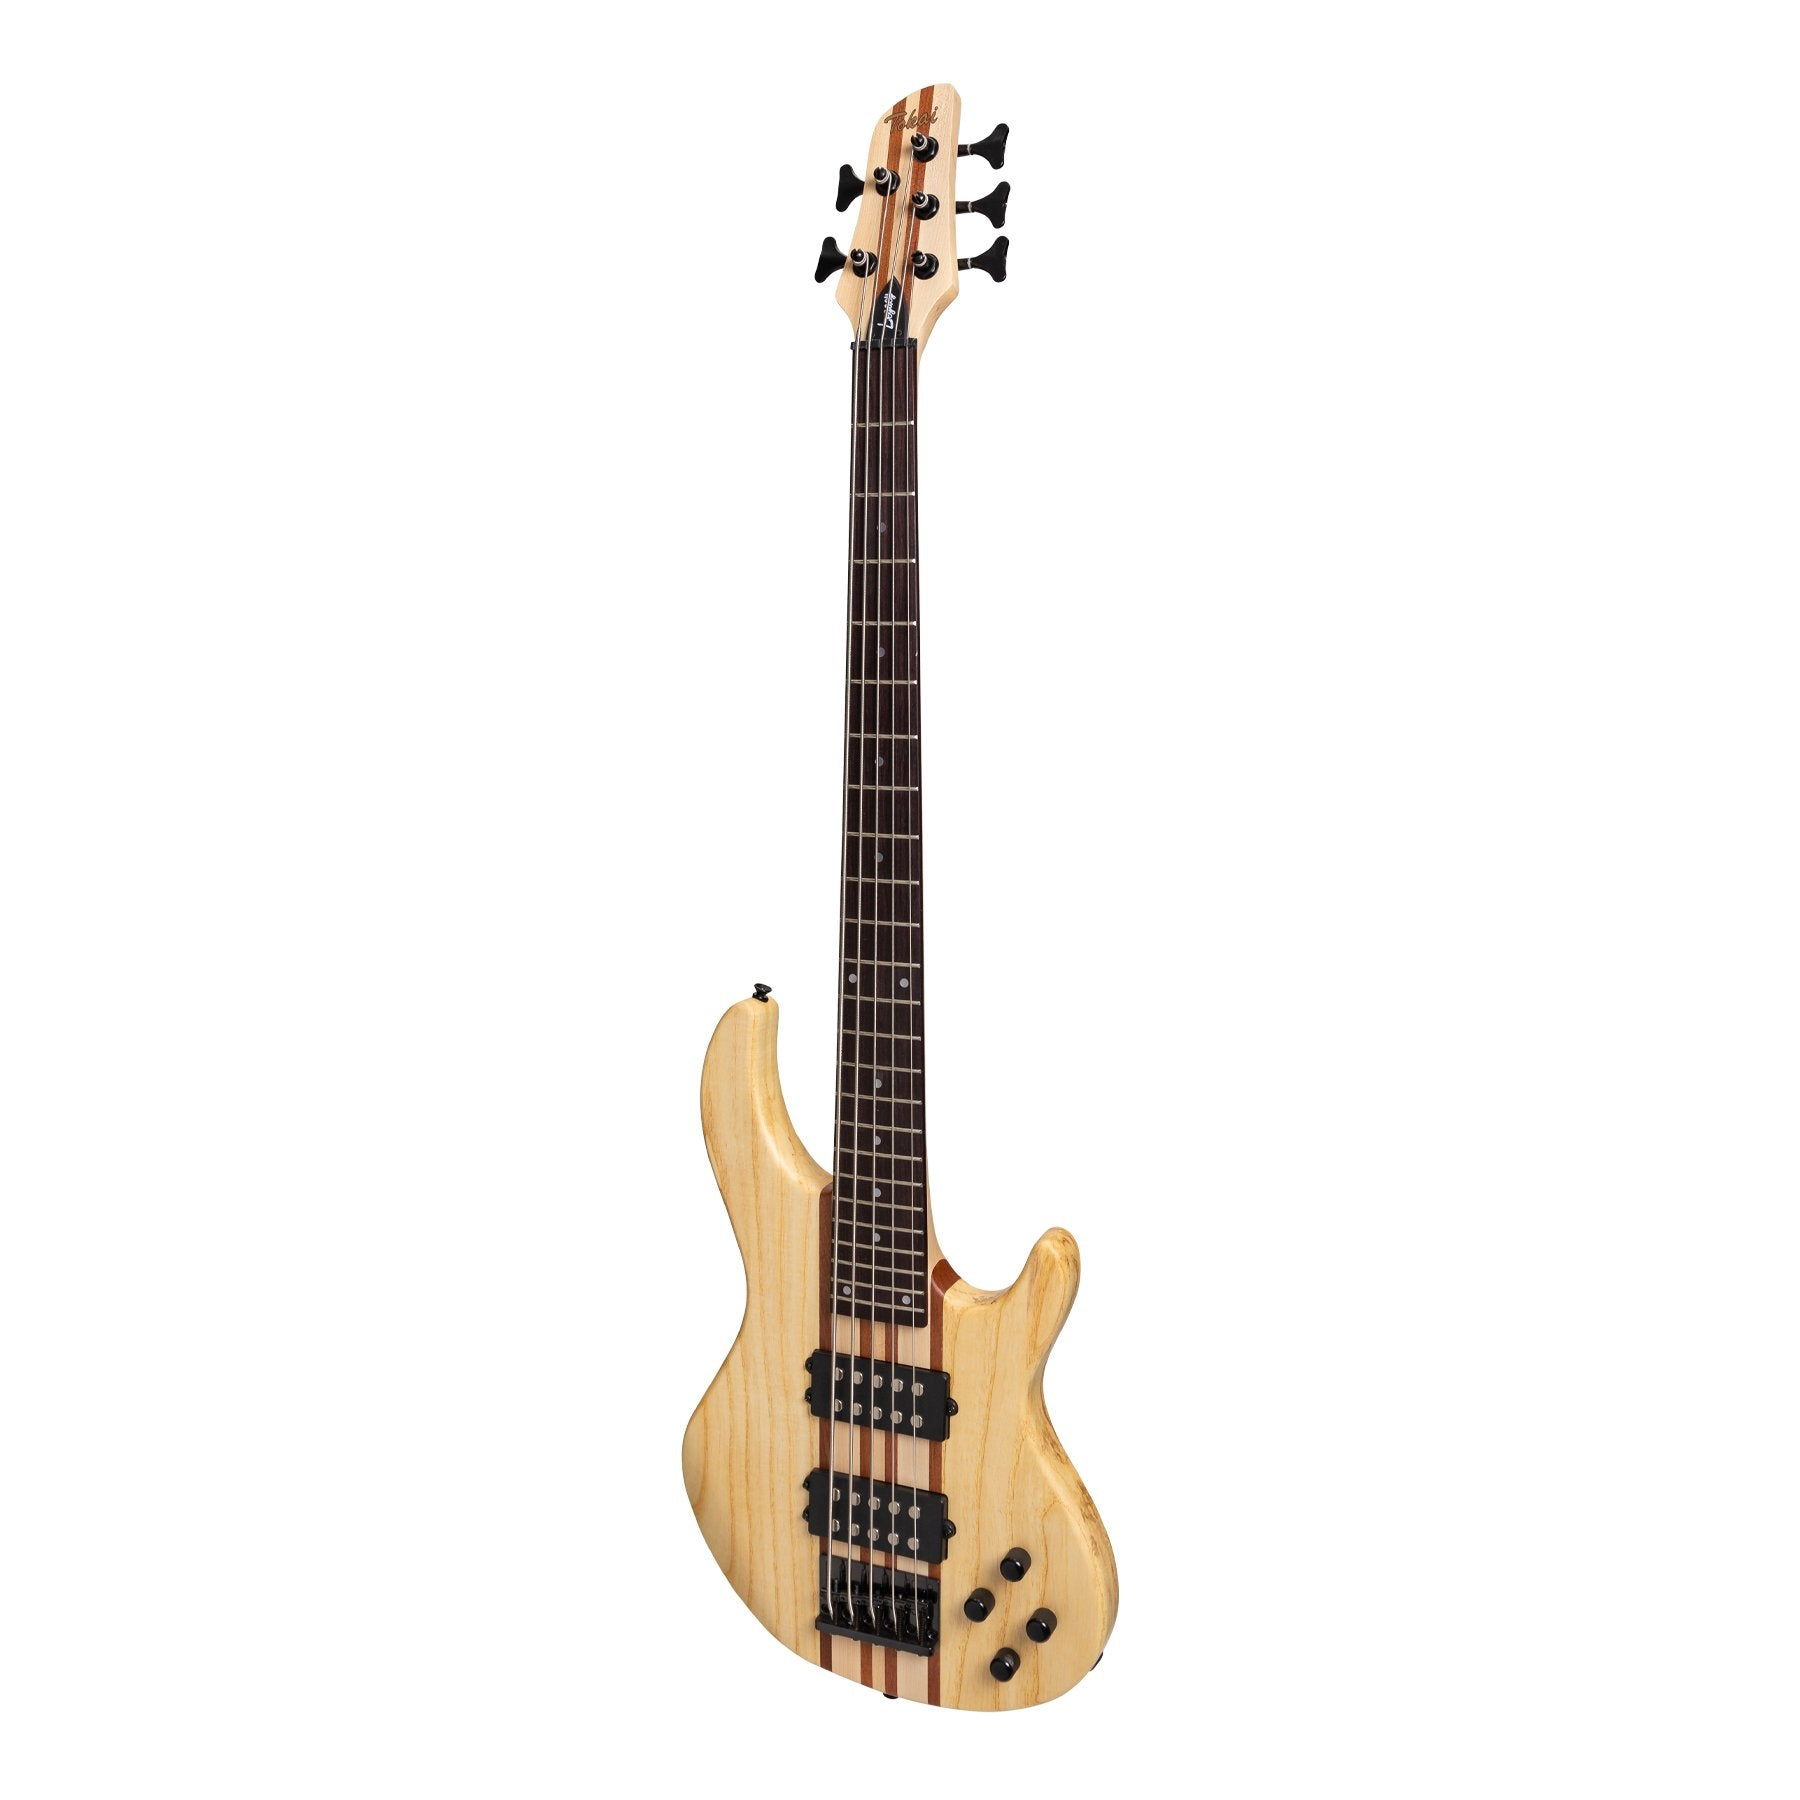 Tokai 'Legacy Series' 5-String Ash Neck-Through Contemporary Electric Bass Guitar (Natural Satin)-TL-CTNB3/5-NA